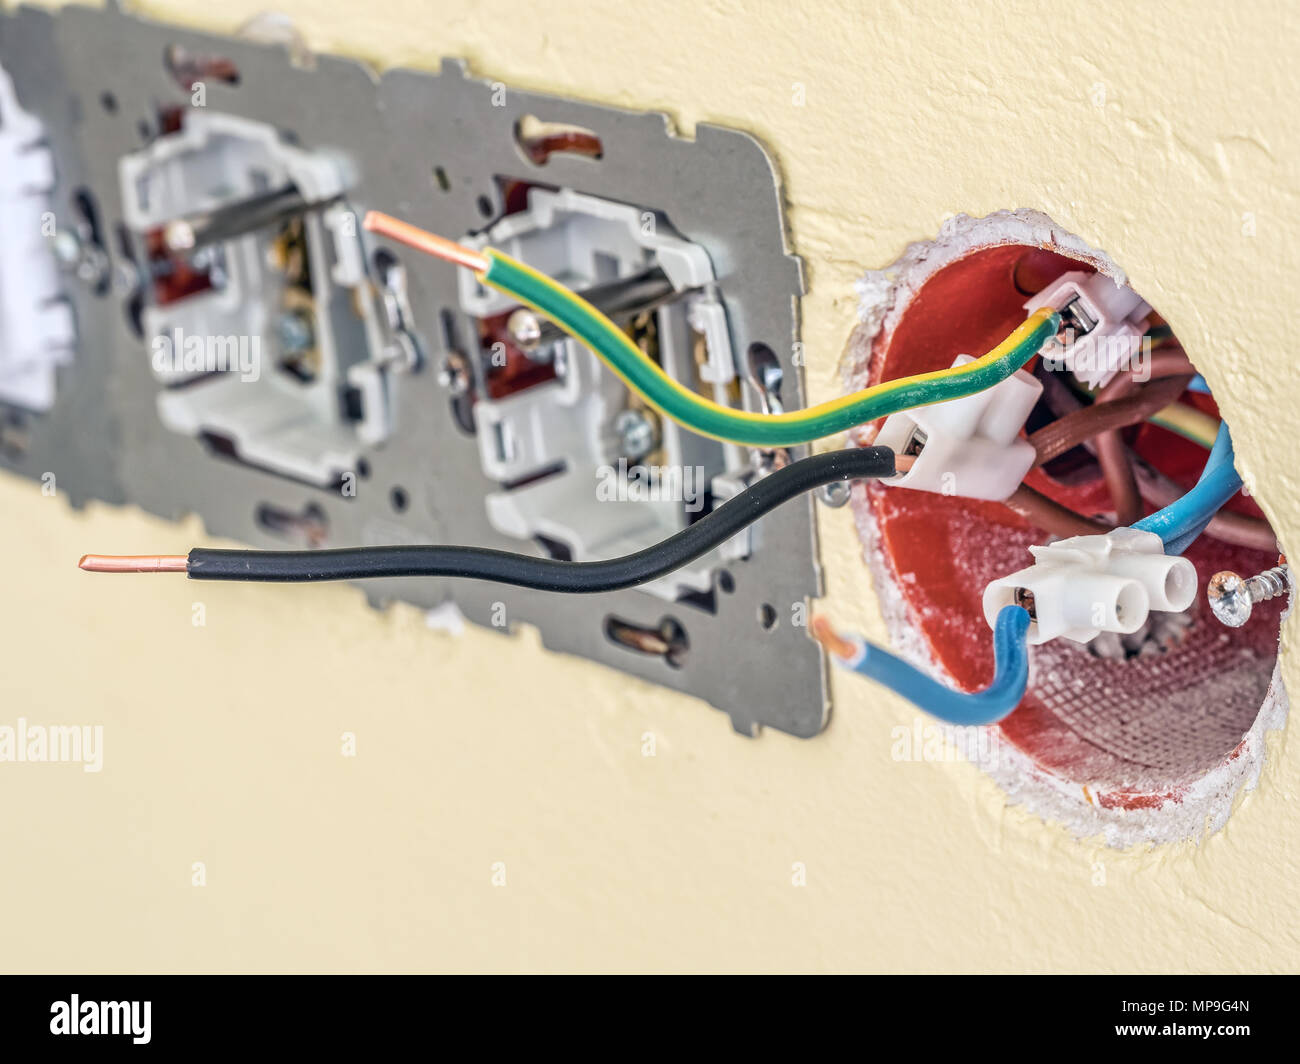 Wiring A Wall Socket Closeup Of Partially Assembled With Live Neutral And Earthing Wires Protruding From The